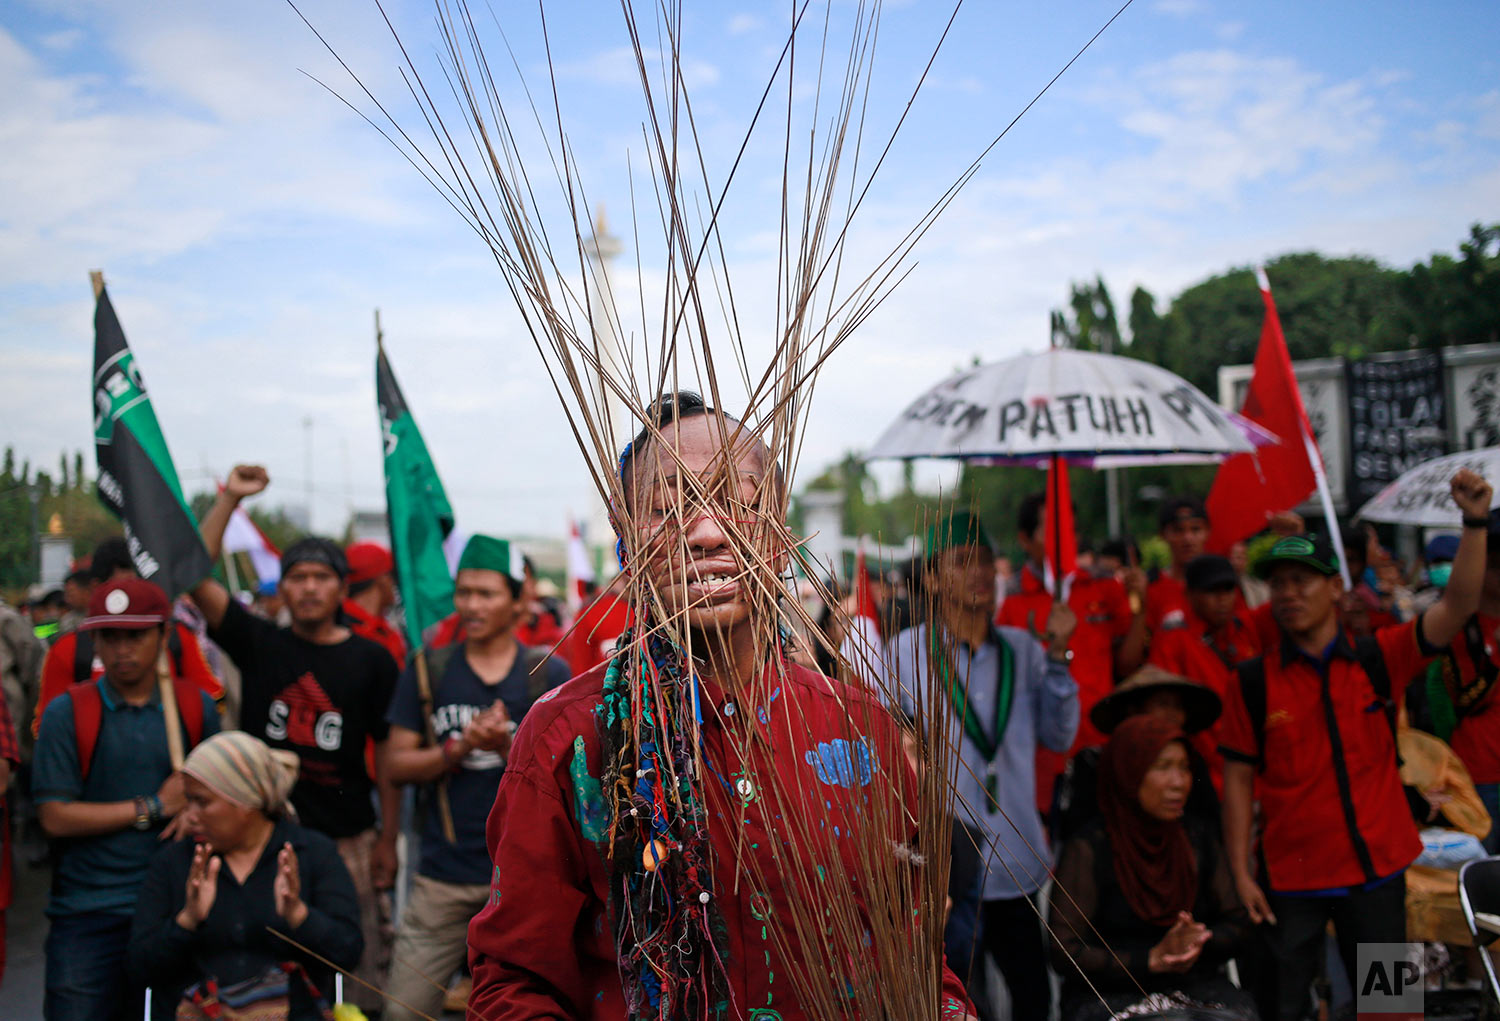 In this March 20, 2017 photo, an activist has skewers wrapped around his head with rubber bands during a rally against the operation of a cement factory in Kendeng, West Java, outside the presidential palace in Jakarta, Indonesia. Kendeng farmers have battled against plans for the factory for years, saying it could taint their water. The factory is now more or less complete and the owner, state-owned PT Semen Indonesia, has said it would create jobs and boost the local economy. (AP Photo/Dita Alangkara)